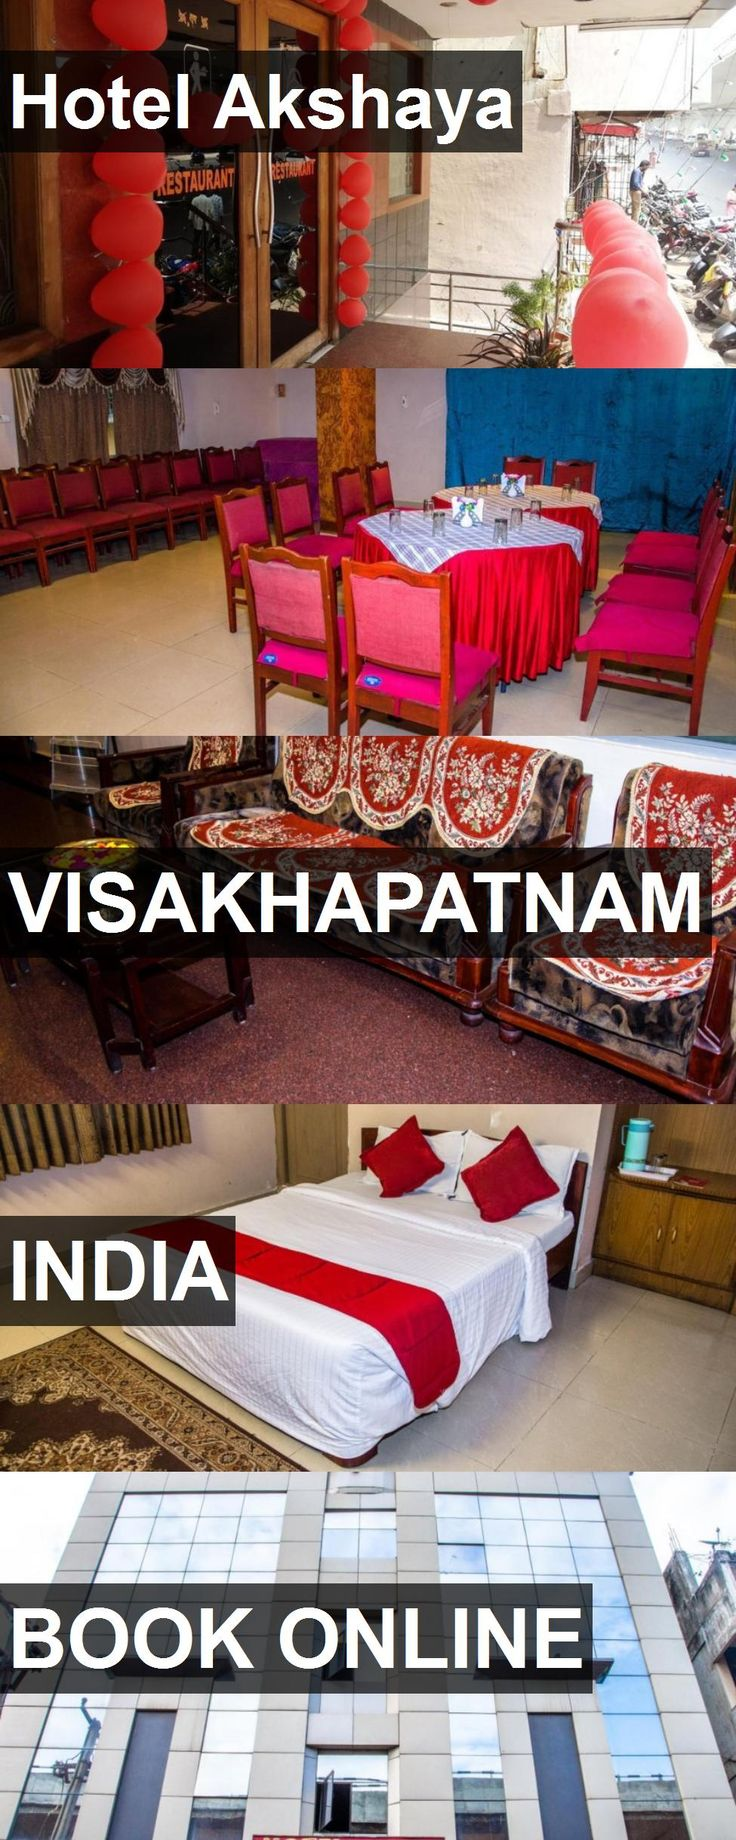 Hotel Hotel Akshaya in Visakhapatnam, India. For more information, photos, reviews and best prices please follow the link. #India #Visakhapatnam #HotelAkshaya #hotel #travel #vacation